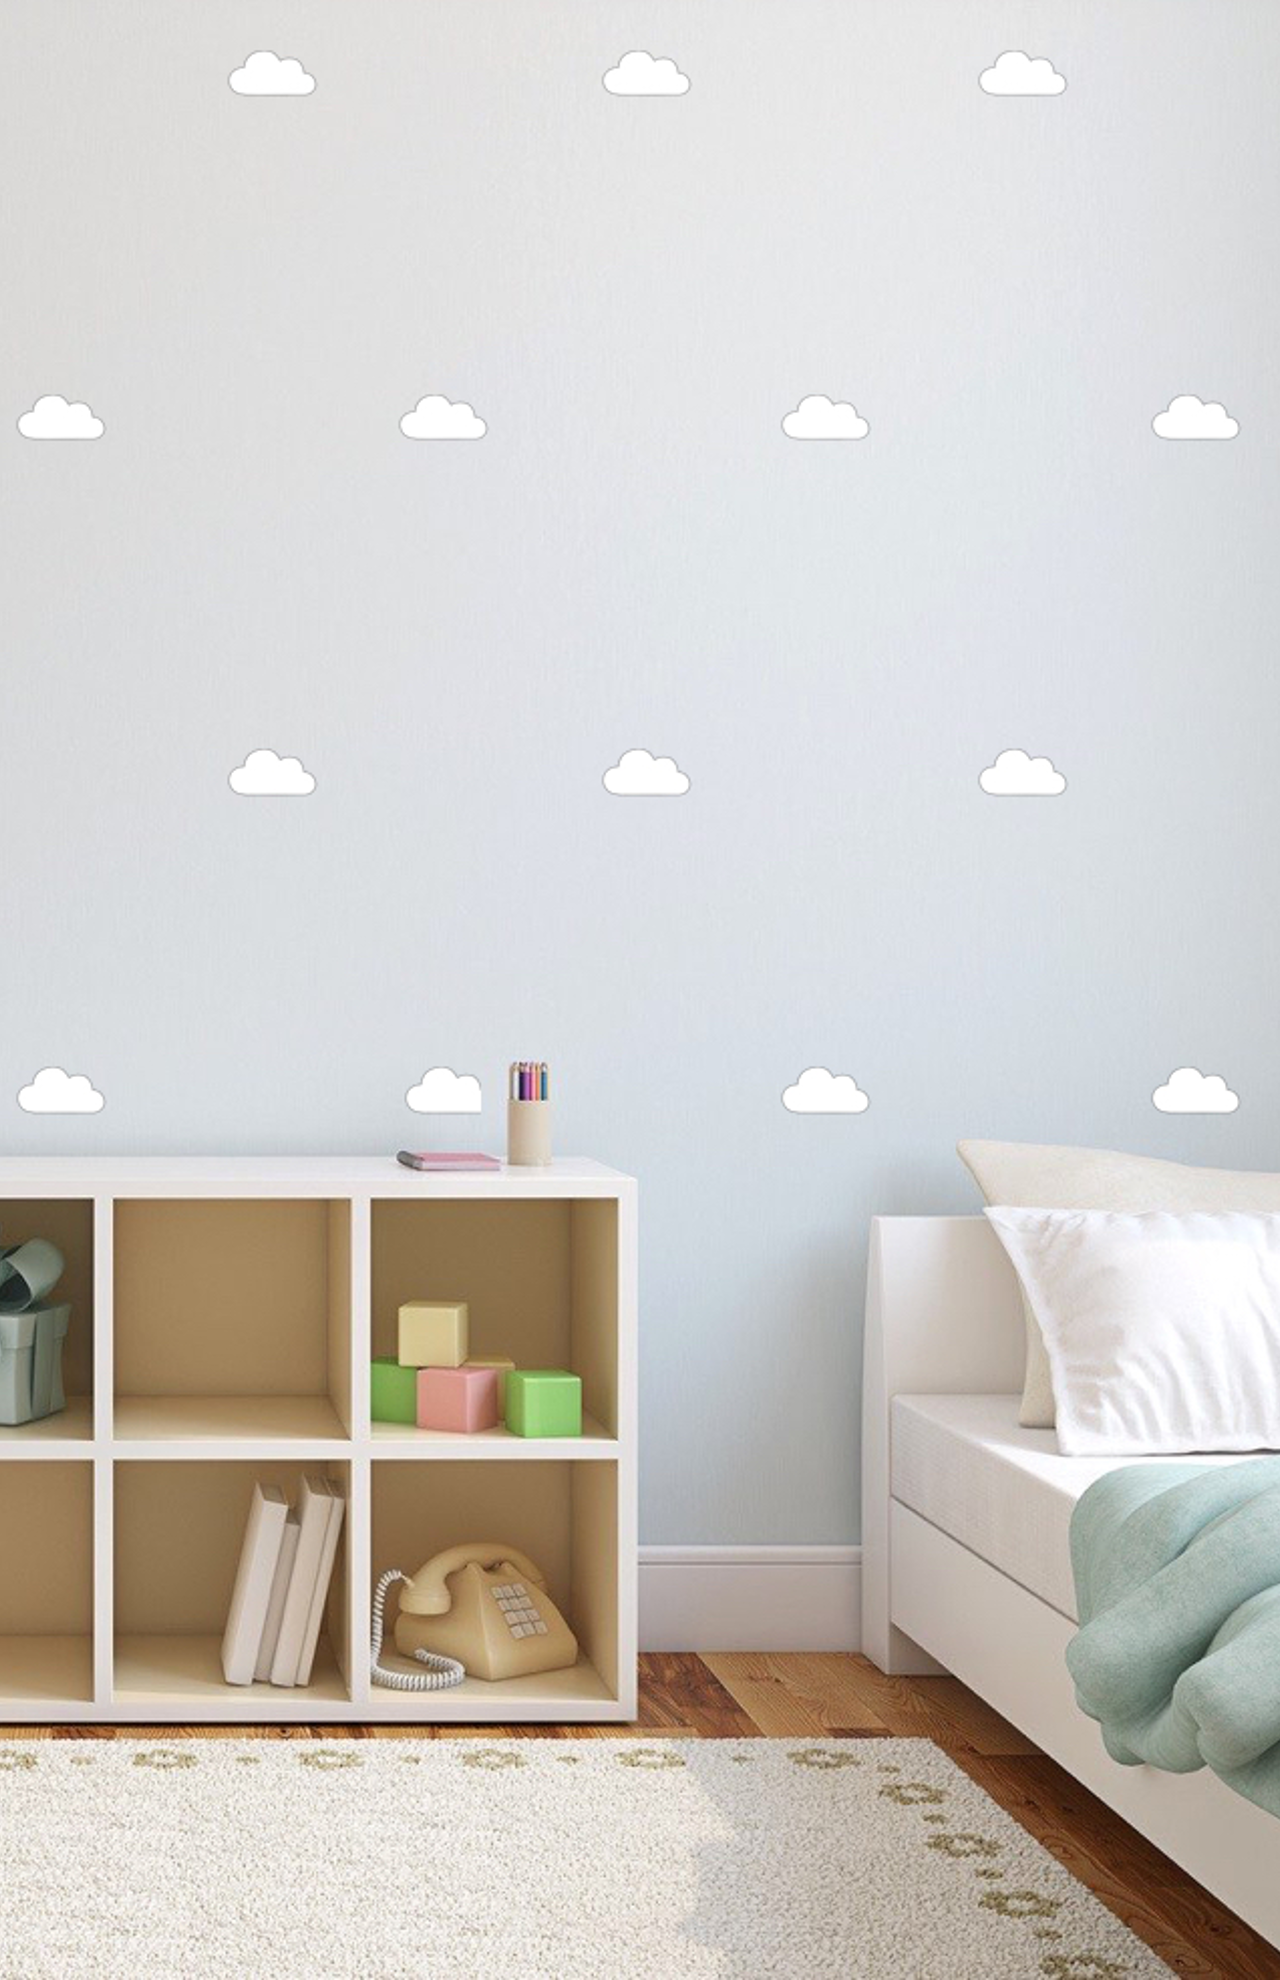 Beau Cloud Wall Stickers Wall Decals White